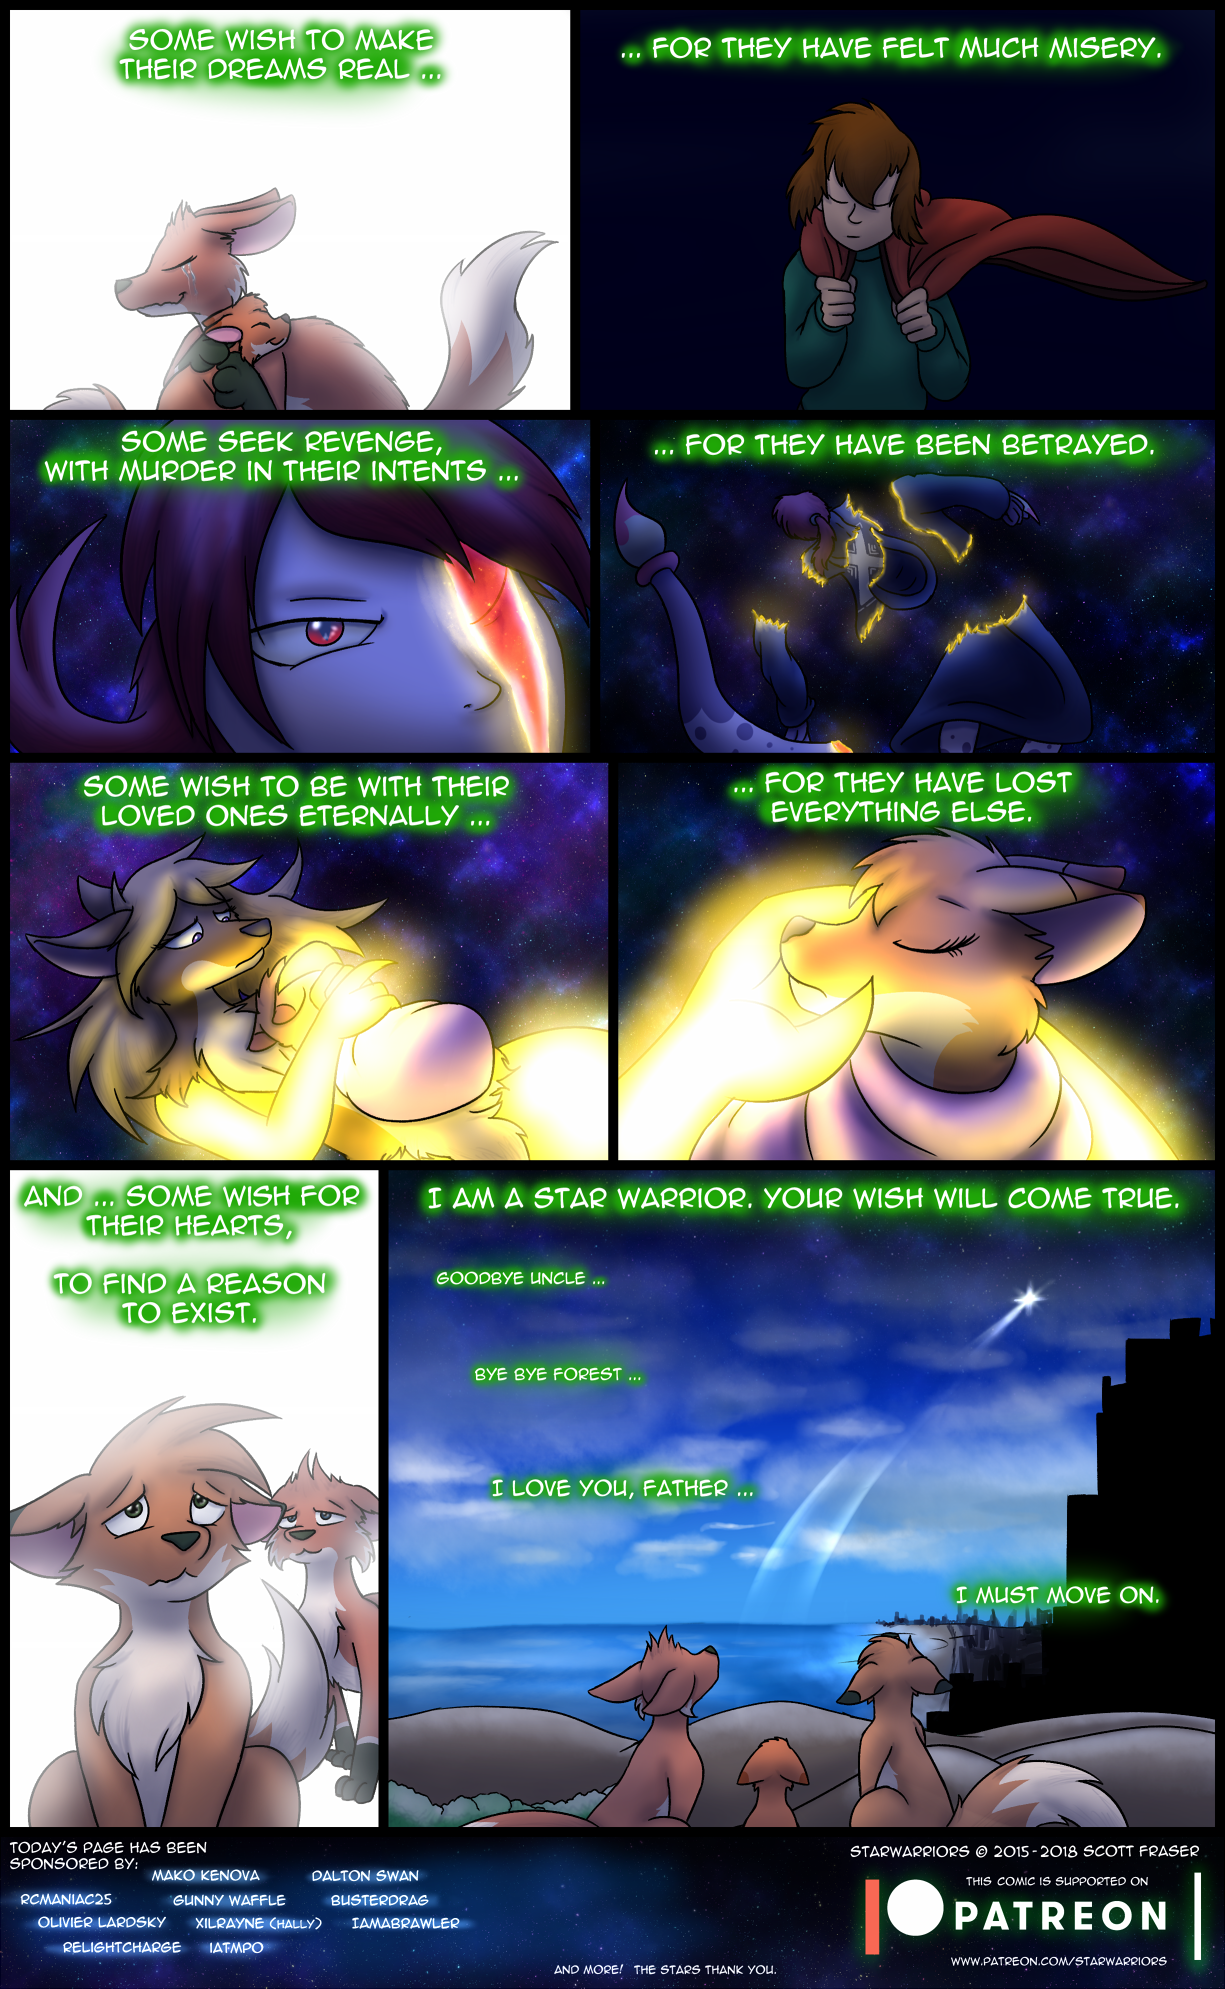 Ch3 Page 61 – Time to Move on